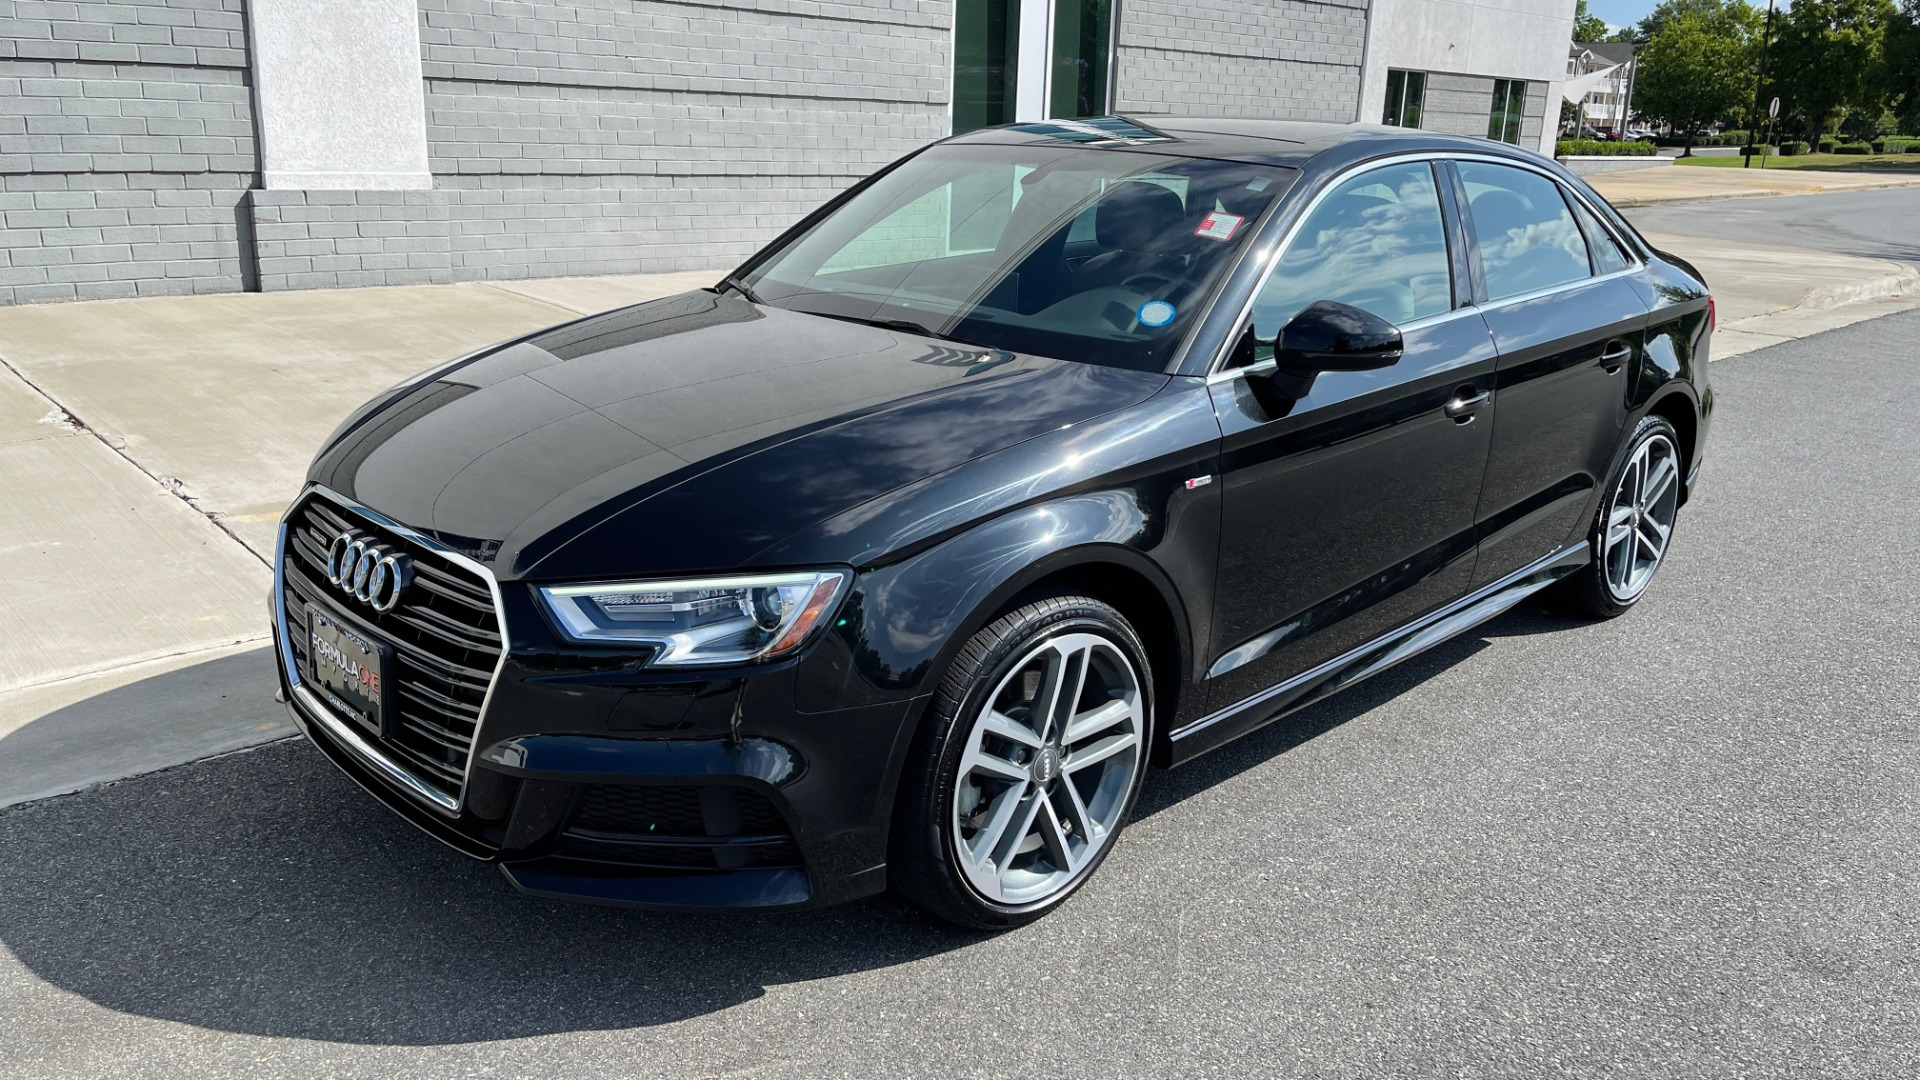 Used 2018 Audi A3 SEDAN PREMIUM PLUS / S-LINE / PANO-ROOF / PARK SYS / REARVIEW for sale $31,795 at Formula Imports in Charlotte NC 28227 3